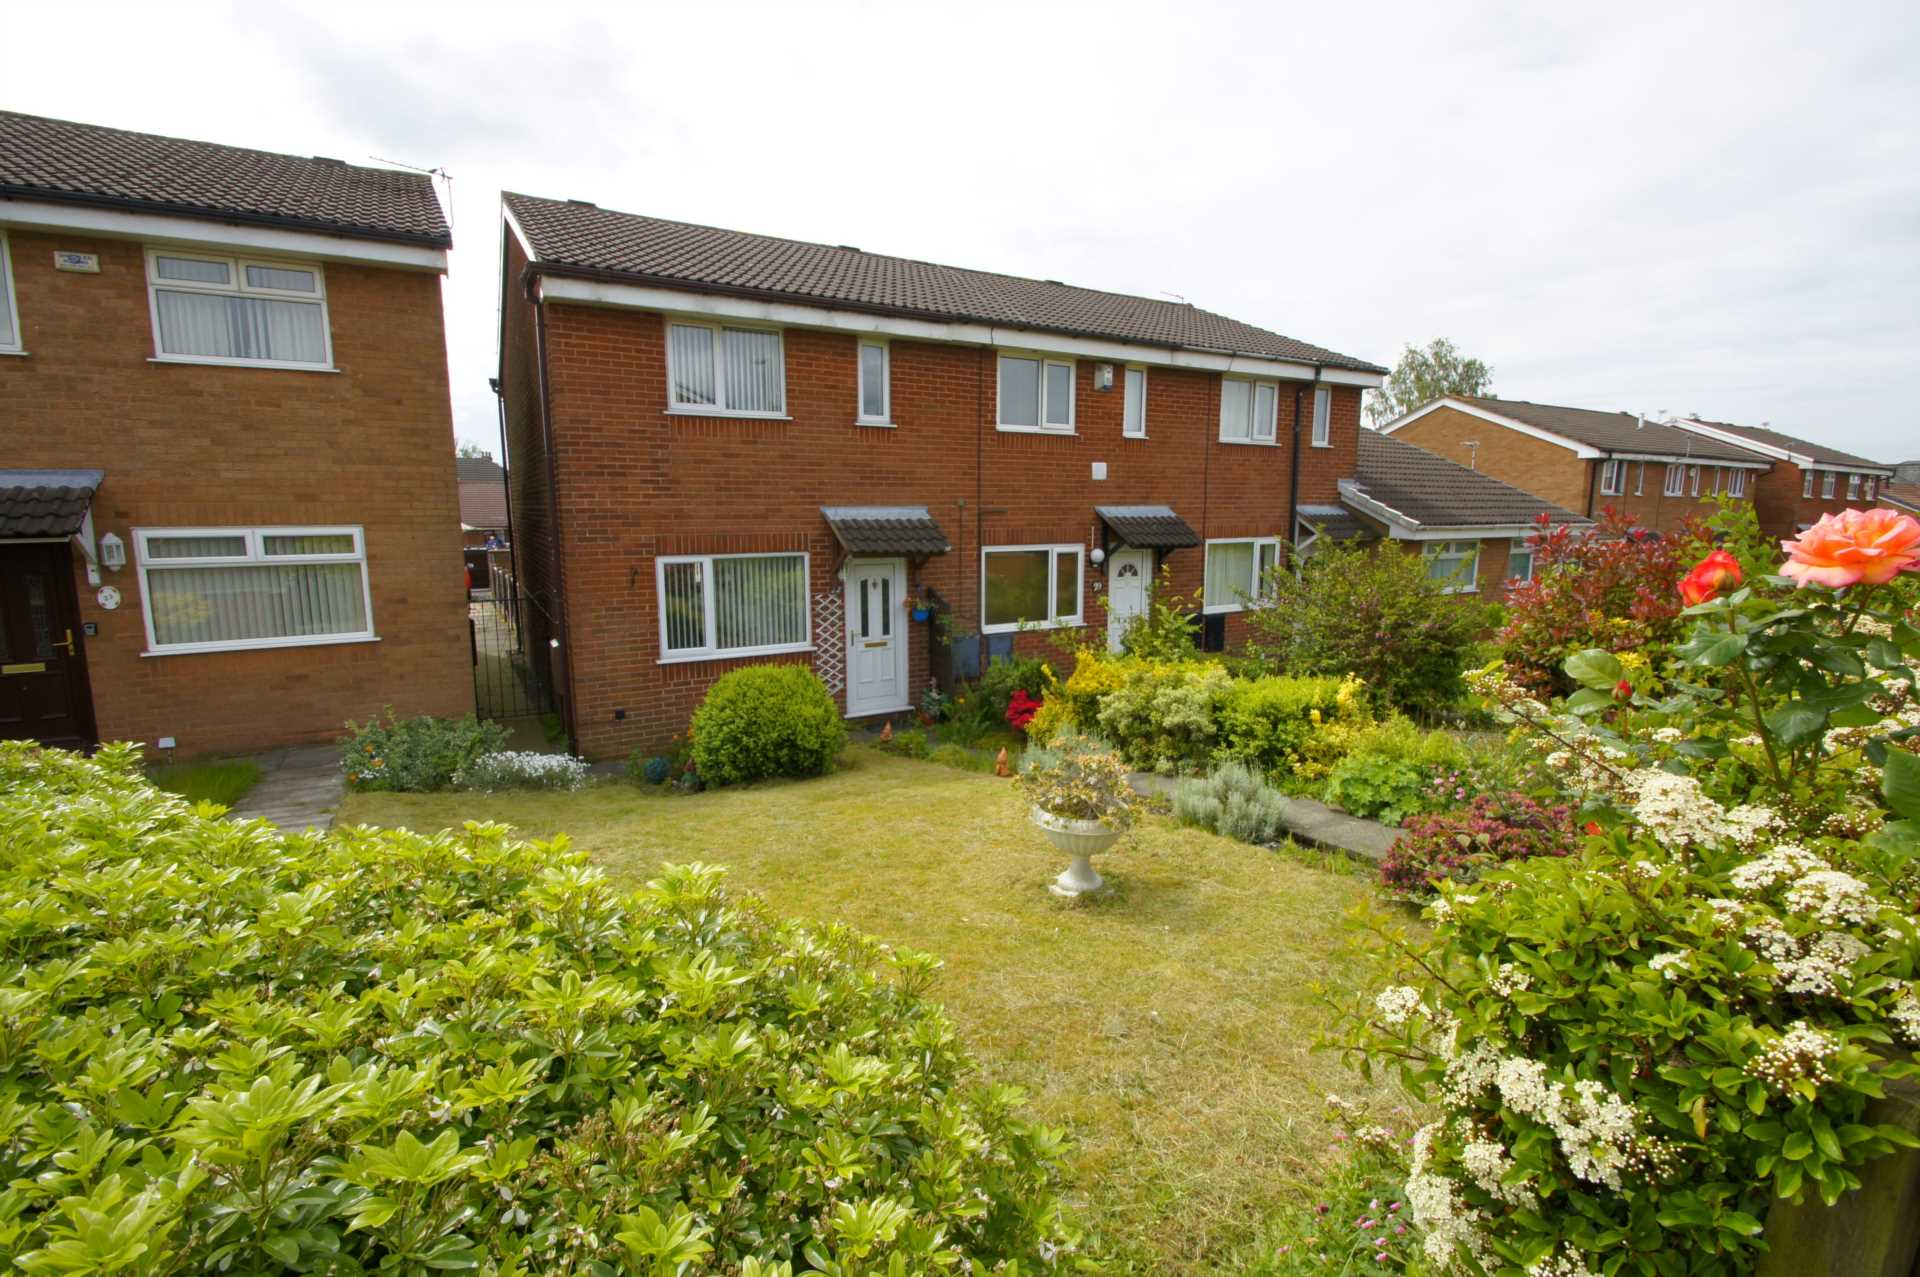 Redman Casey Estate Agency - 2 Bedroom Town House, Heather Close, Horwich